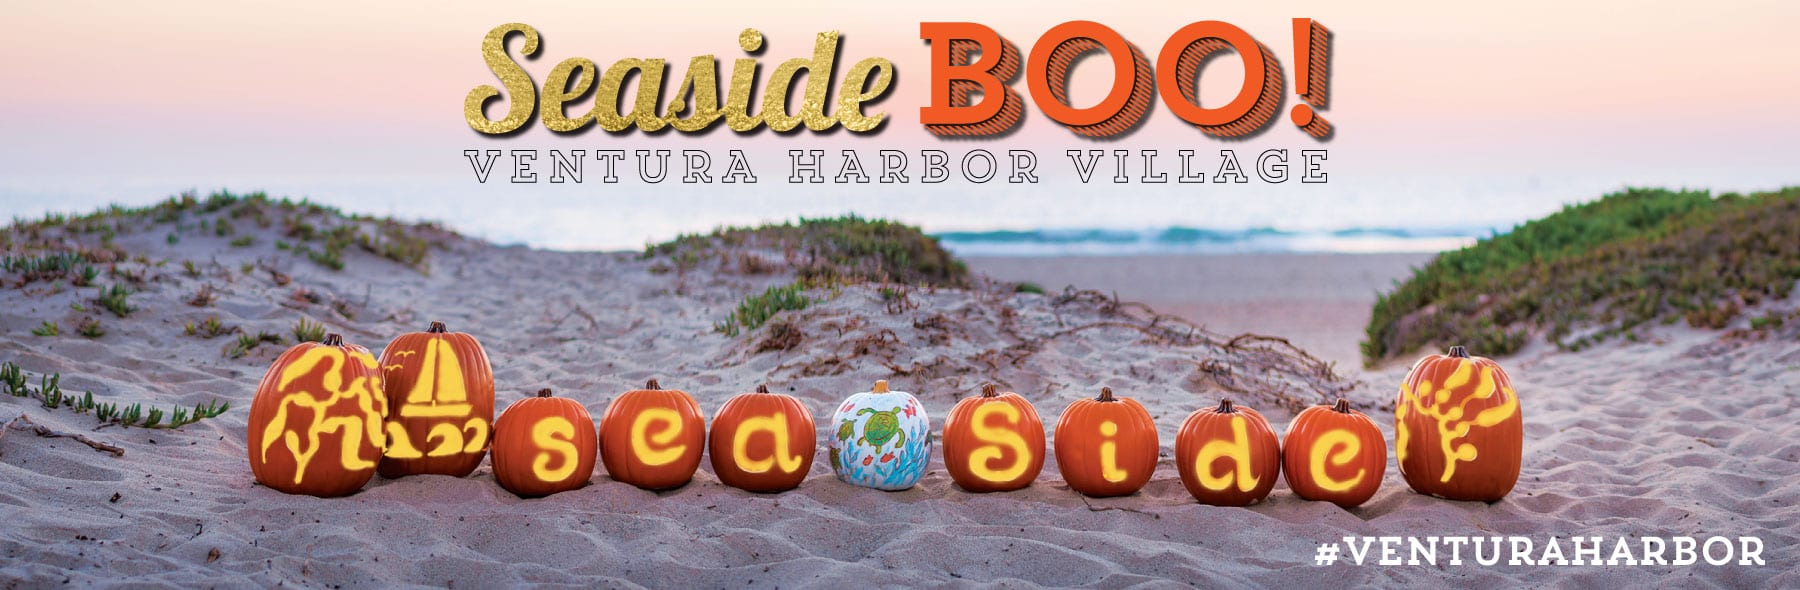 Seaside Boo at ventura harbor village